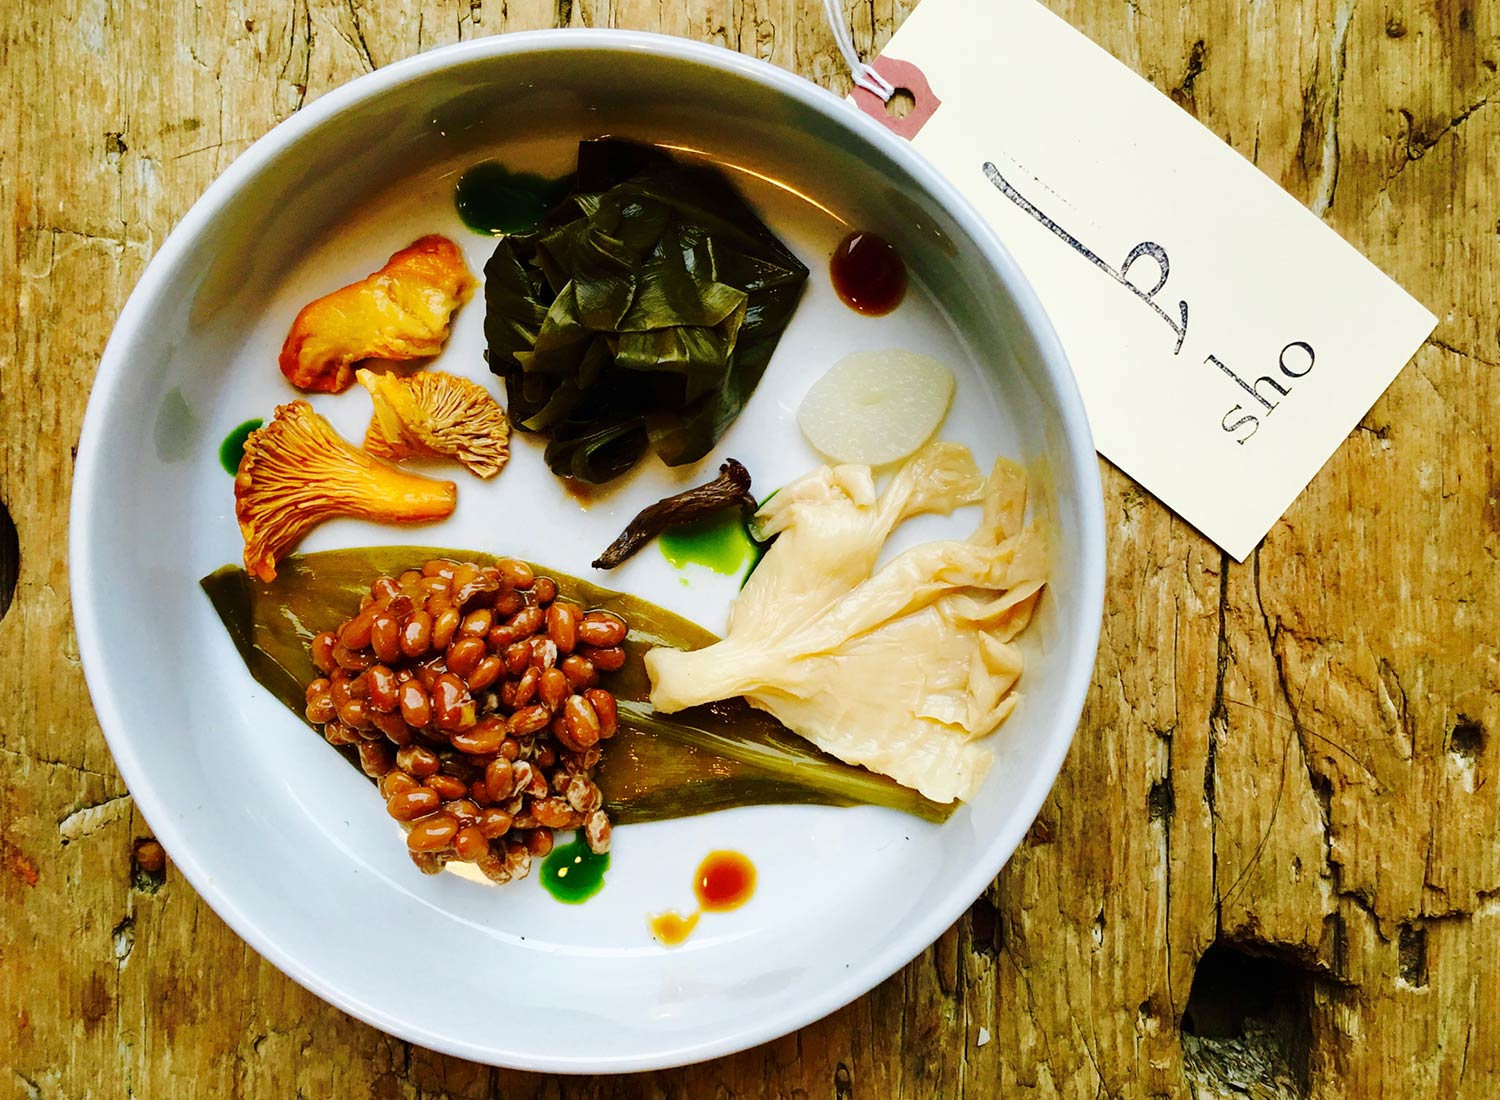 Food Lab at SHO: vegan gastronomy in a cold climate | fermented ramp leaves, oyster mushrooms, black trumpets, chanterelles with chive oil & vermont natto